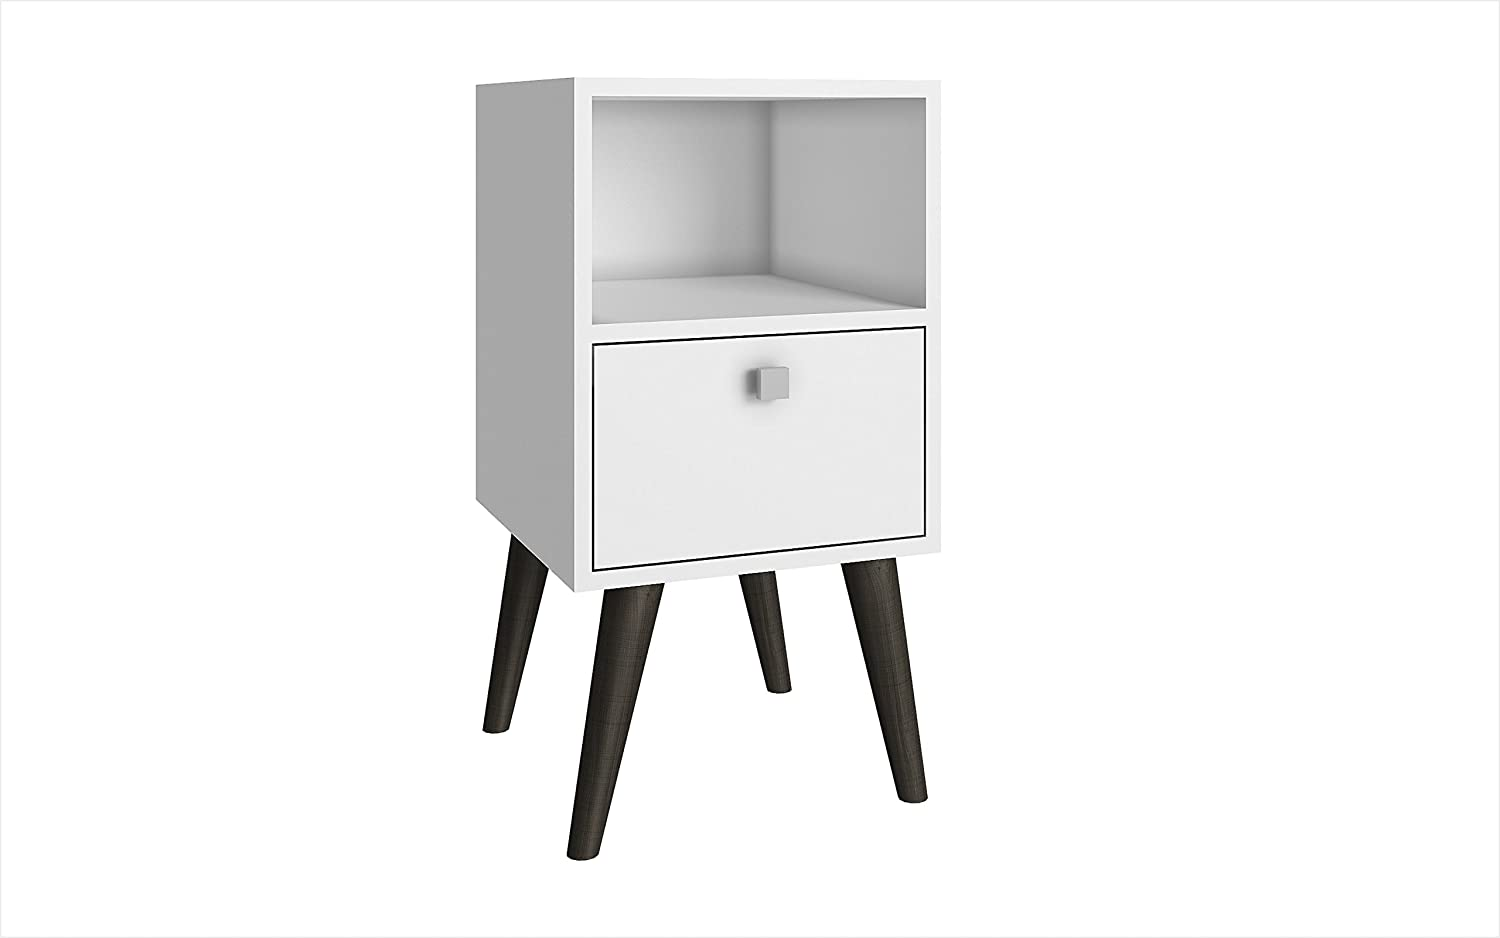 White and Grey Feet Manhattan Comfort Abisko Collection Mid Century Modern Free Standing 1 Drawer End Table   Side Table, Oak   Stamp   Grey